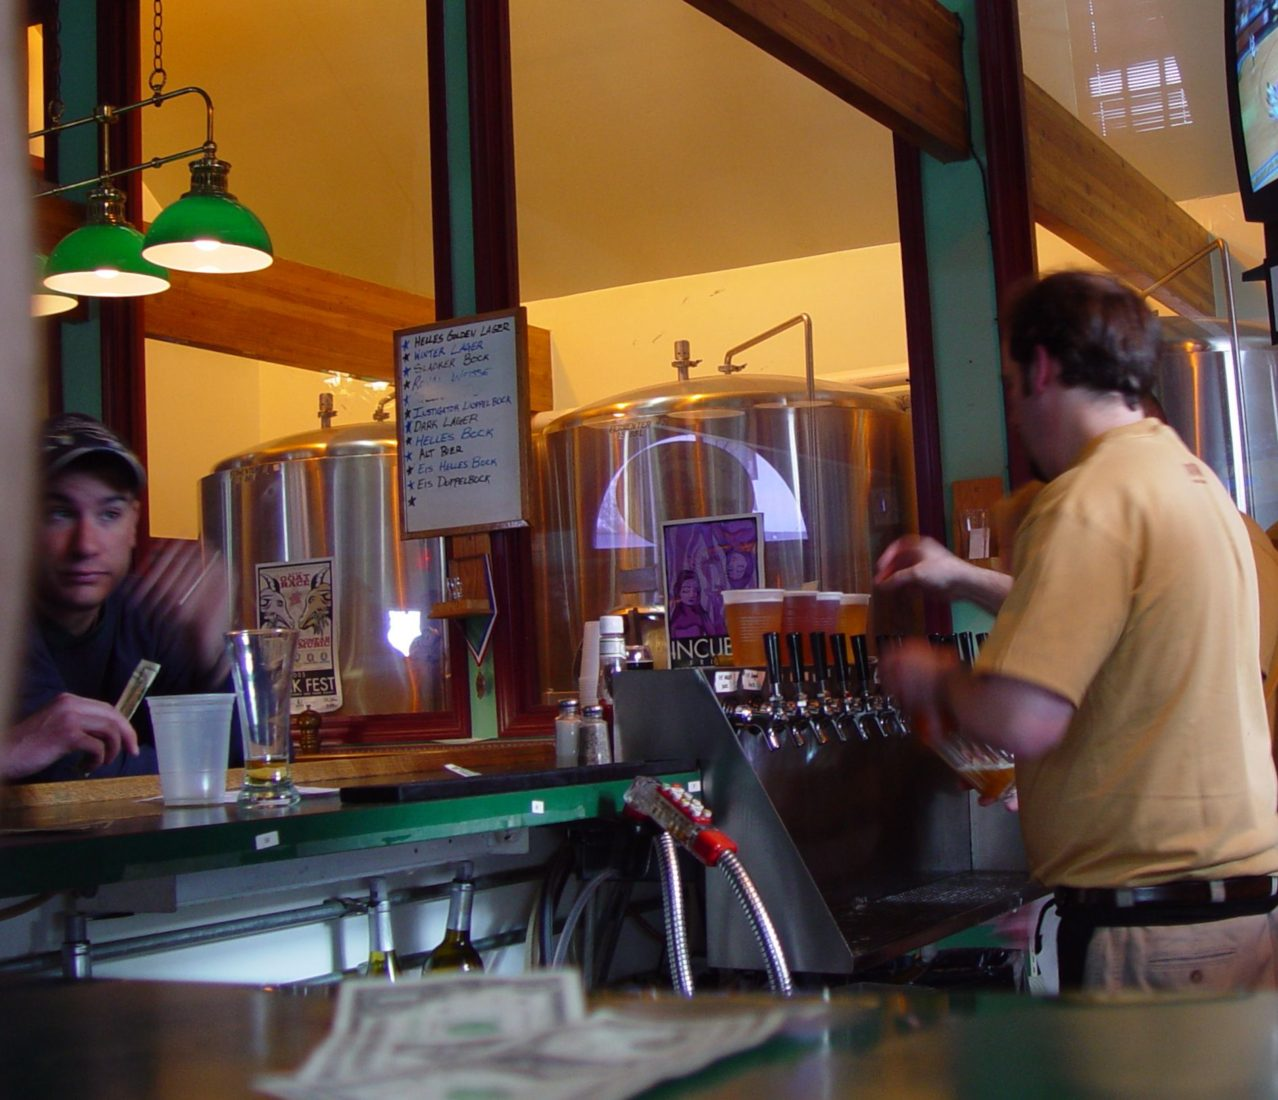 71. Sly Fox Brewery and Restaurant, Phoenixville PA 2006